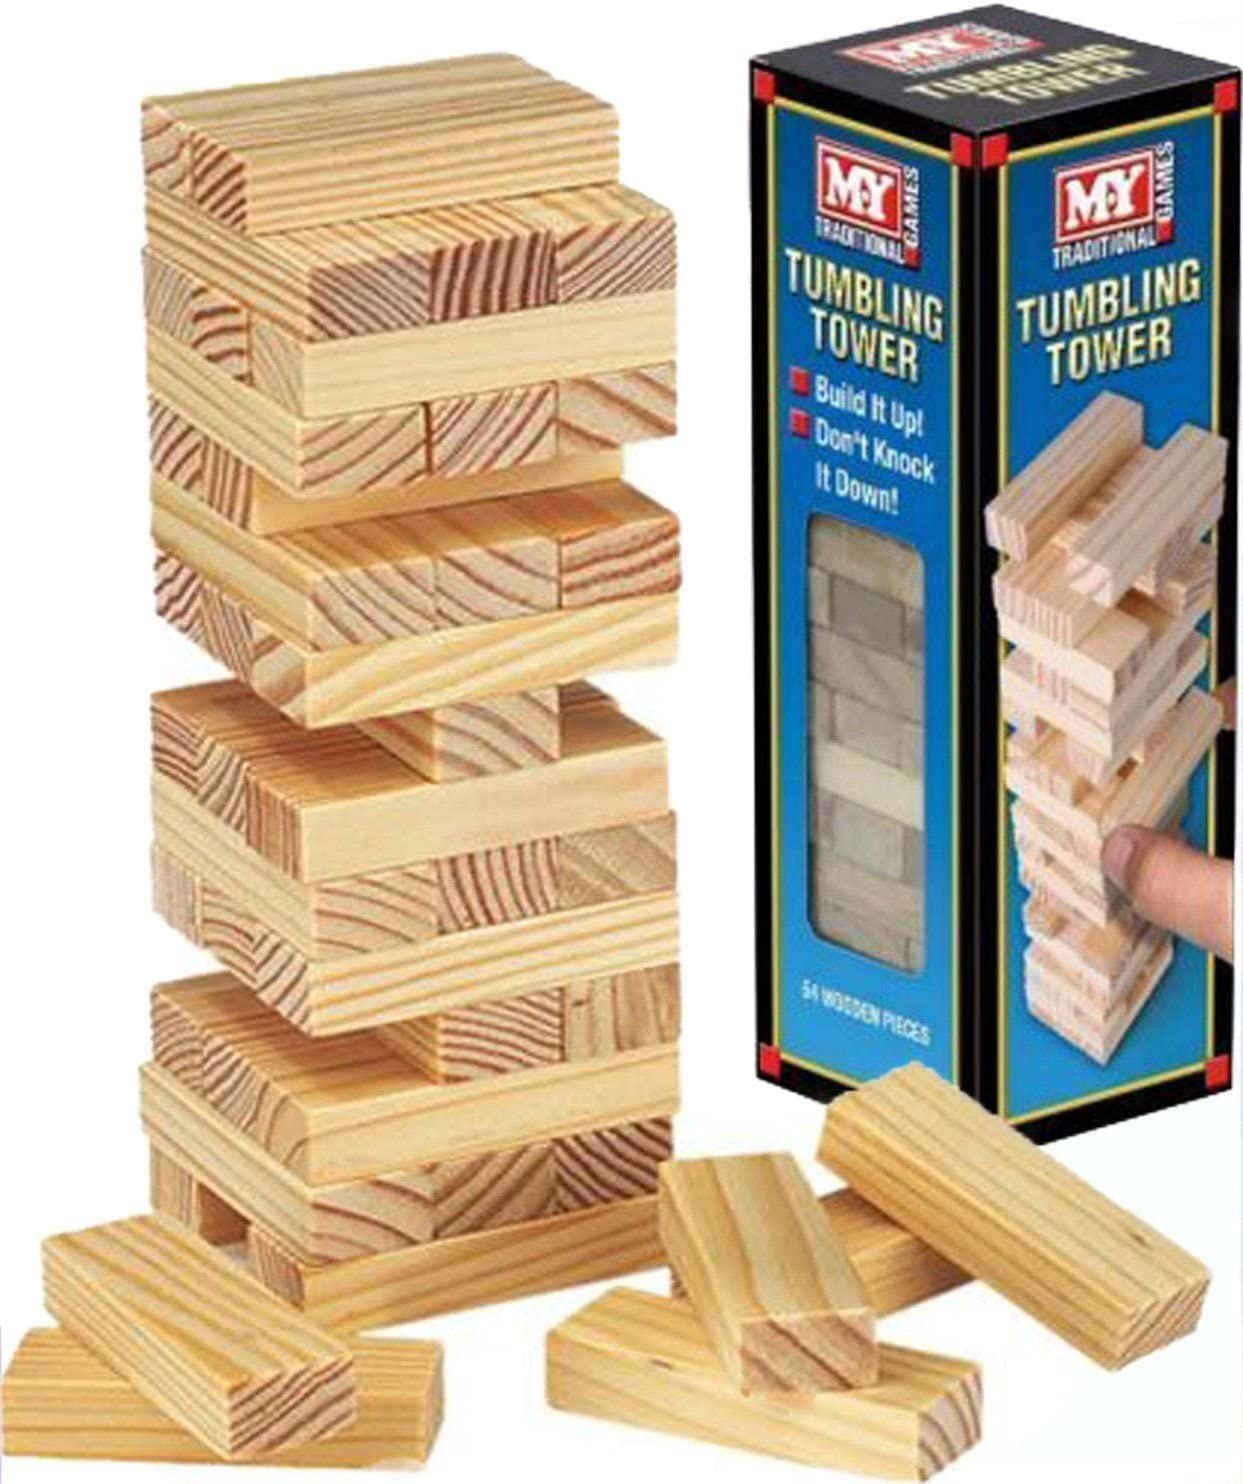 Wooden Tumbling Stacking Tower Kids Family Party Board Game by Holland Plastics Original Brand: Amazon.es: Juguetes y juegos